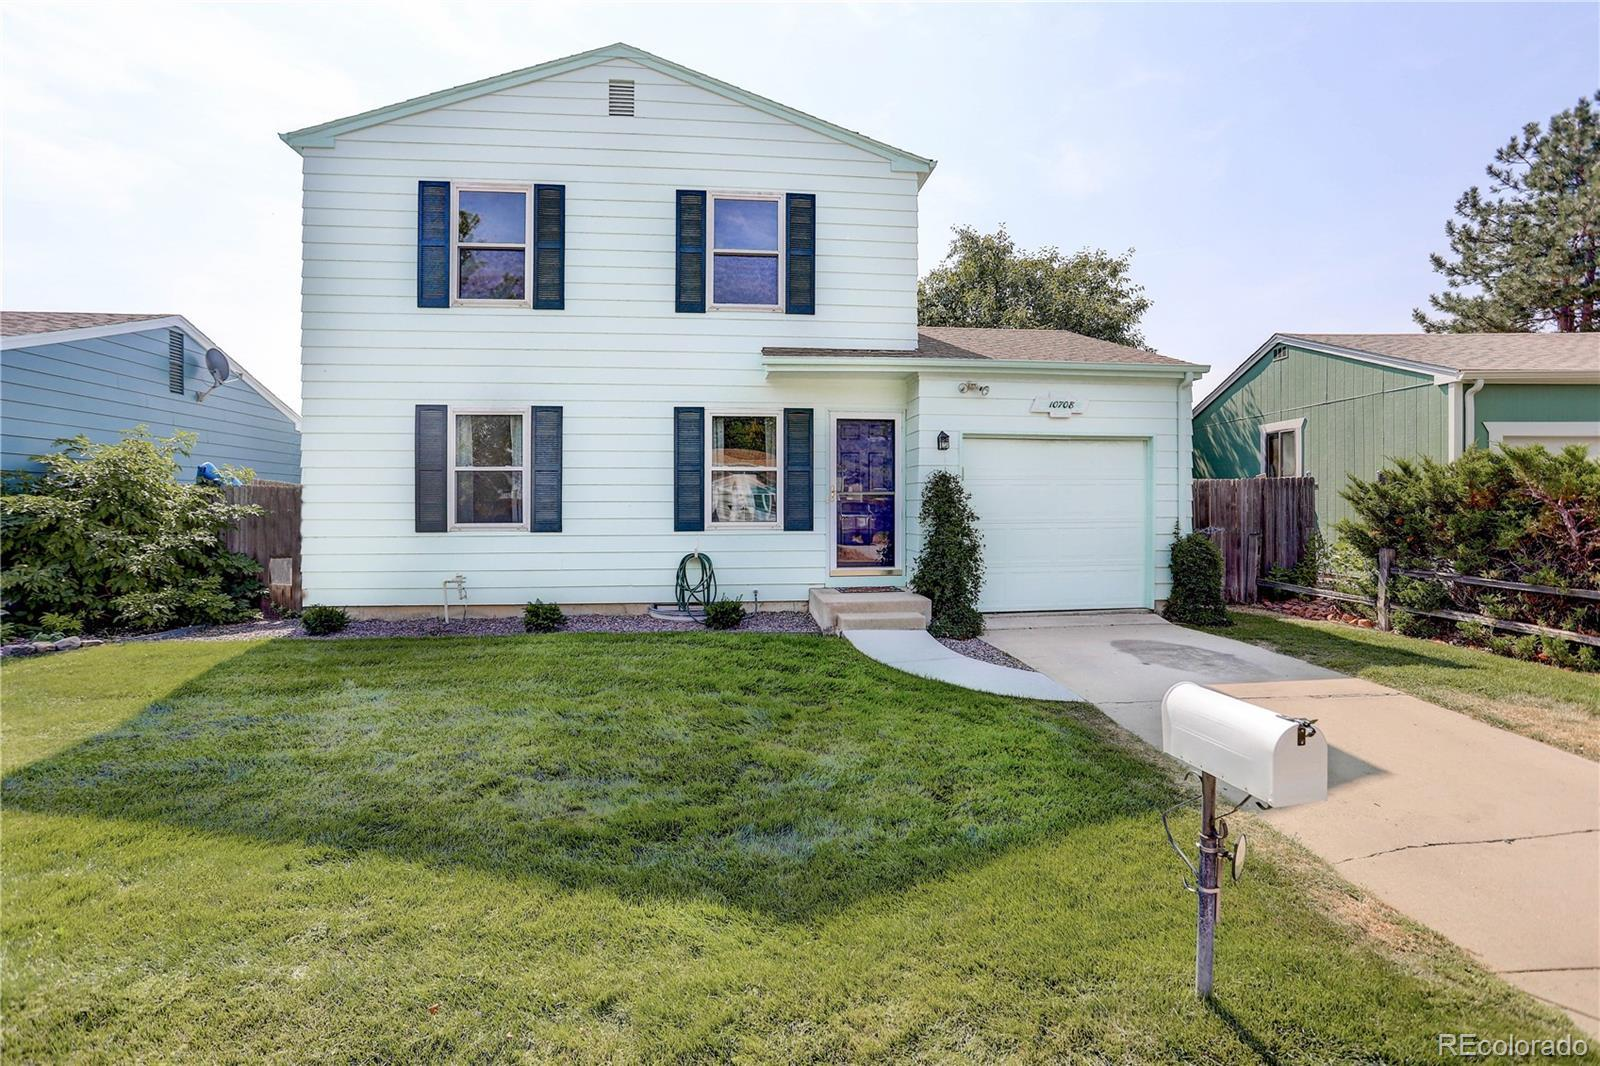 10708 Lewis Circle, Westminster, CO 80021 - #: 3787020